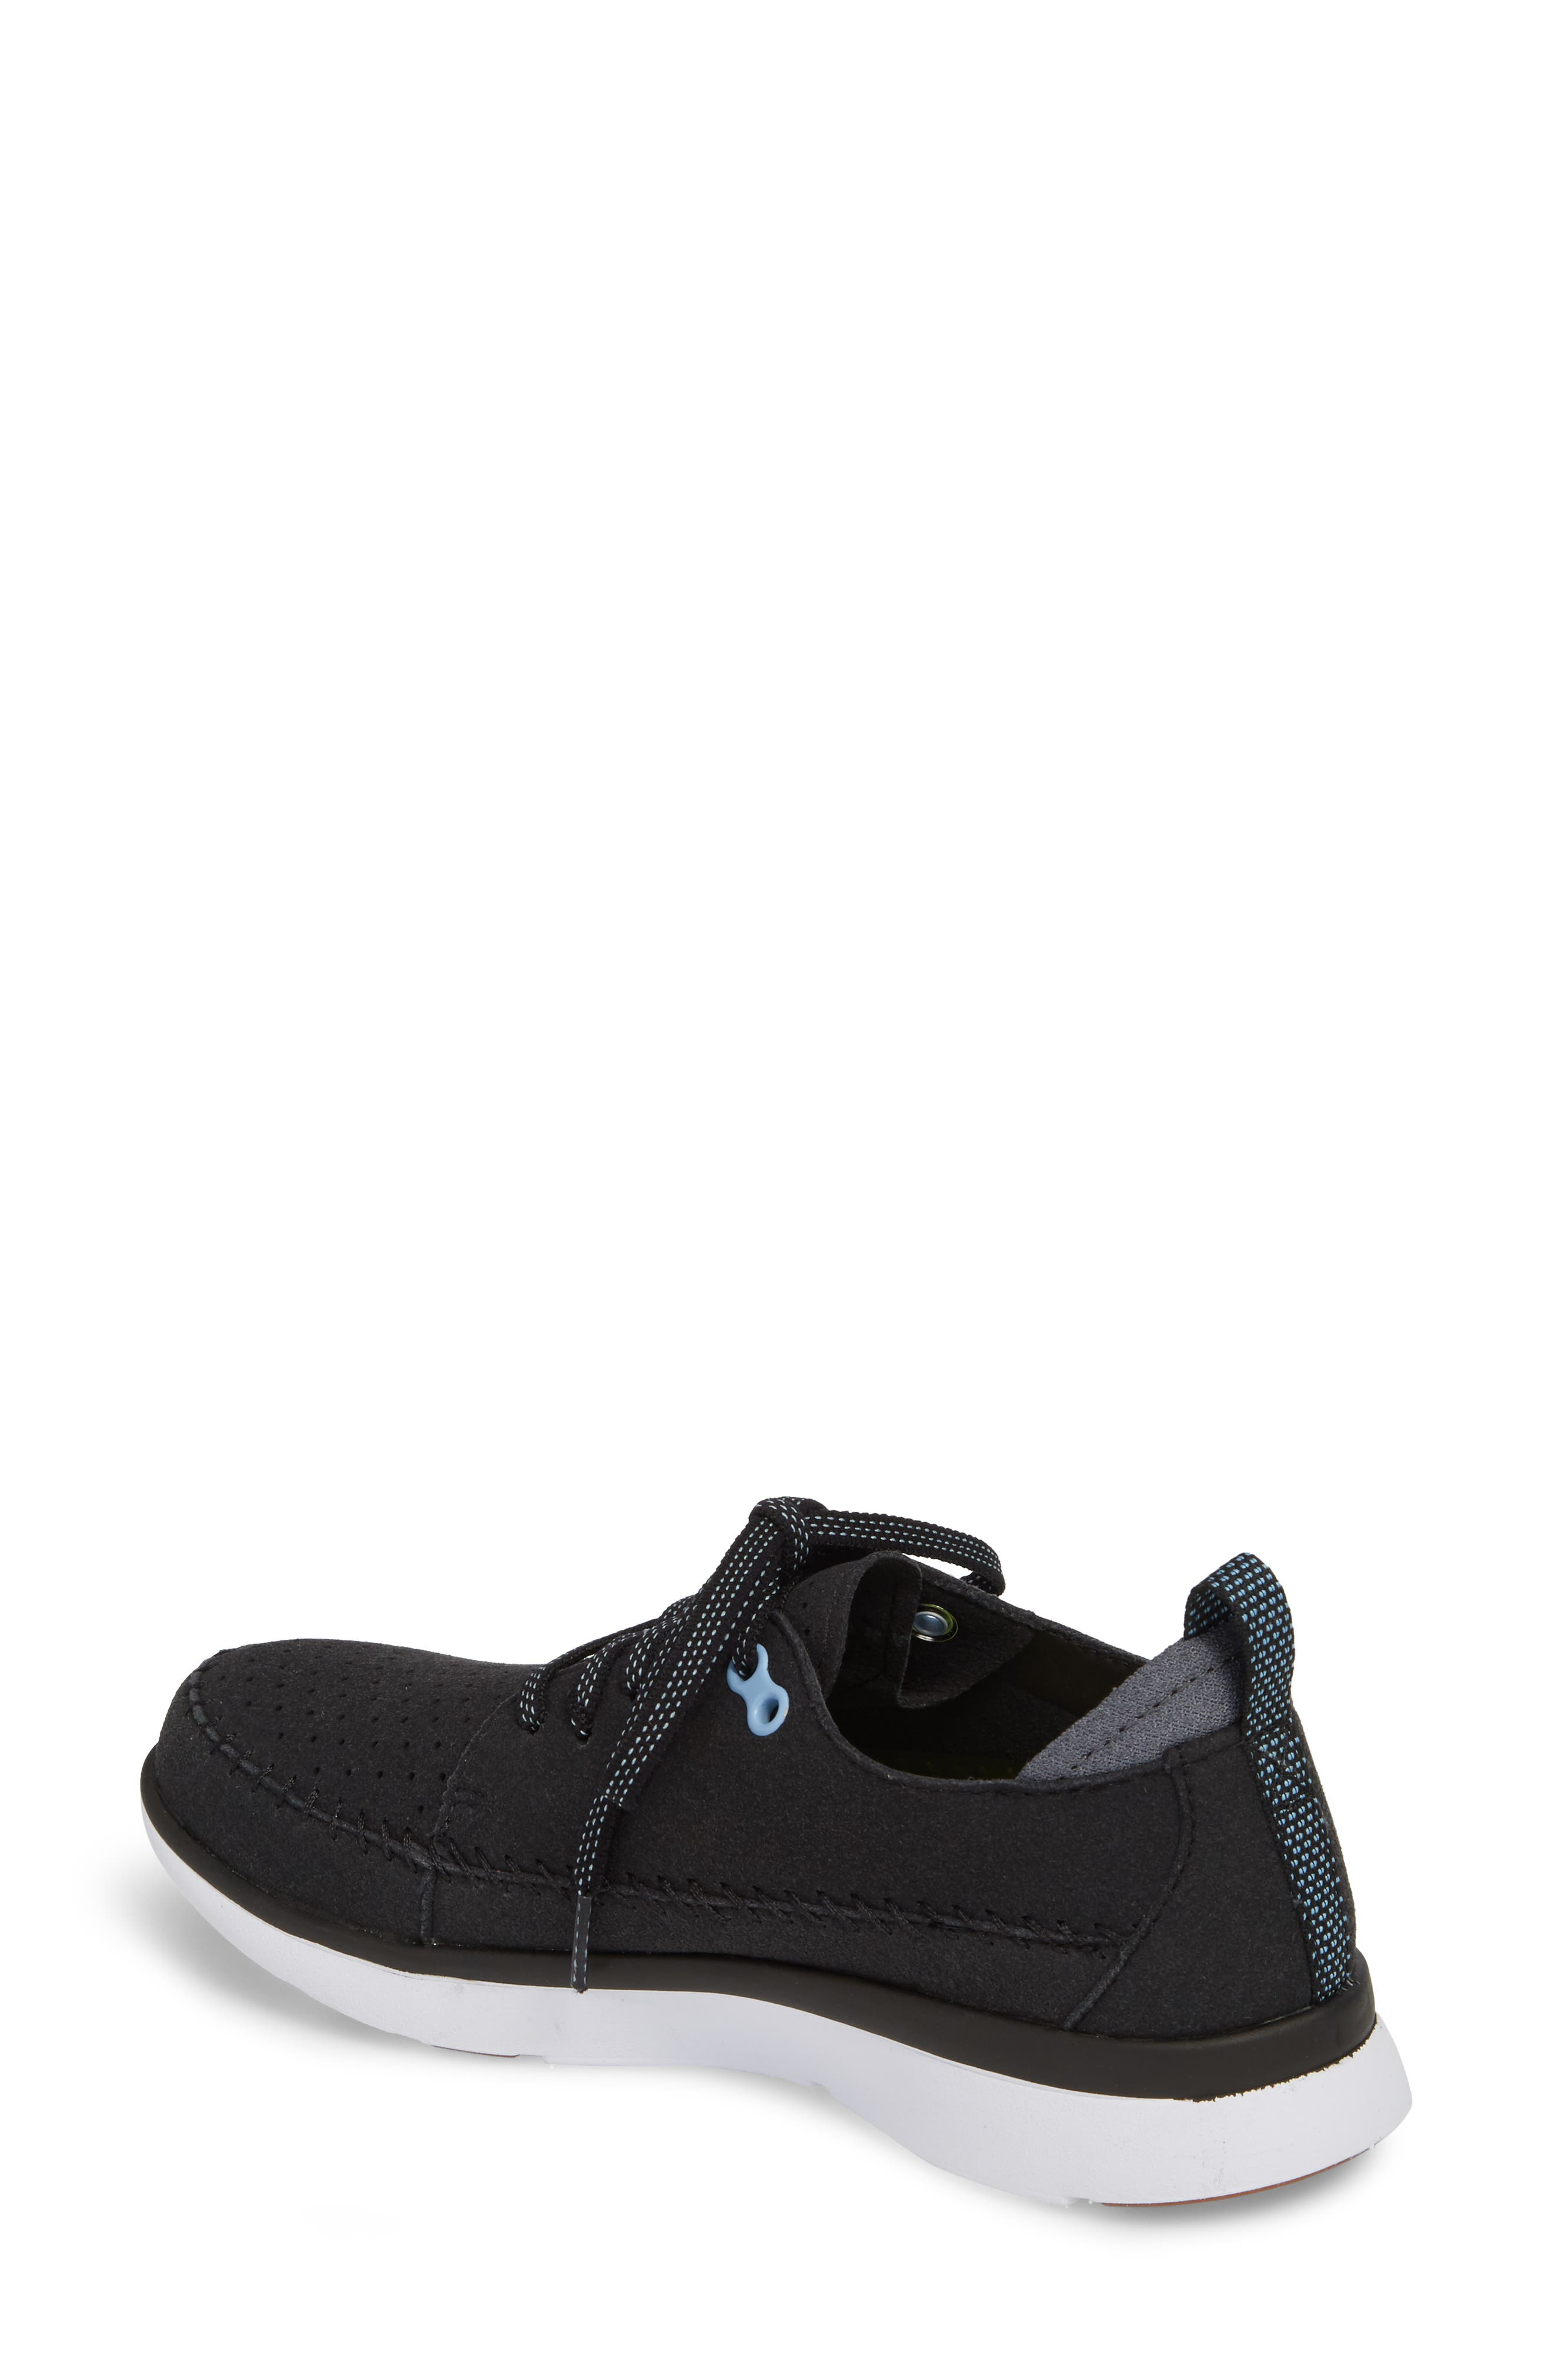 Addy Sneaker,                             Alternate thumbnail 2, color,                             BLACK FABRIC